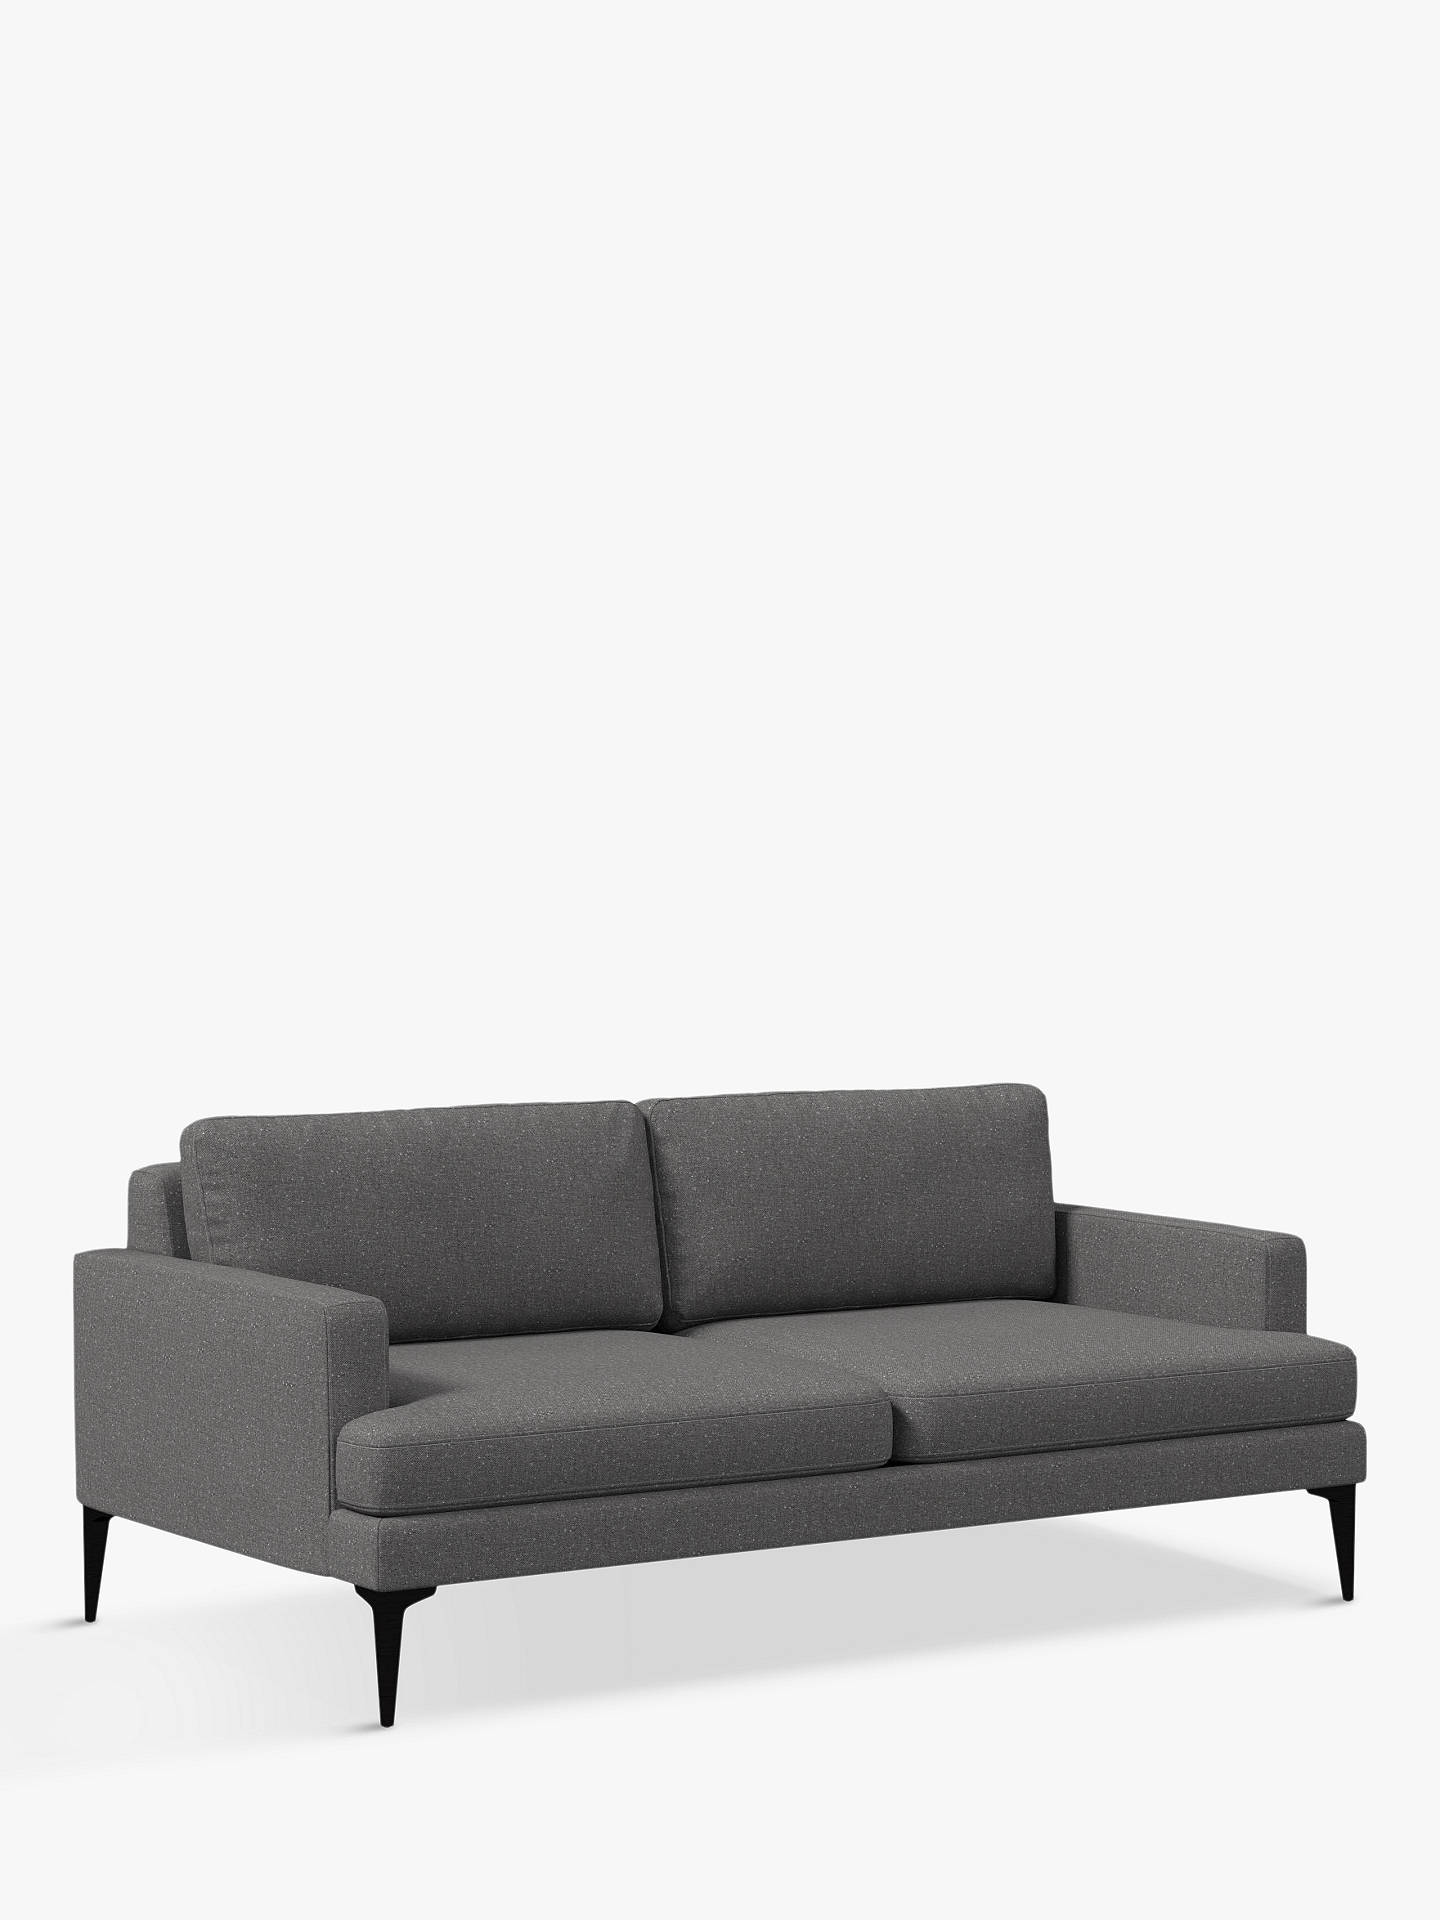 West Elm Andes Large 3 Seater Sofa At